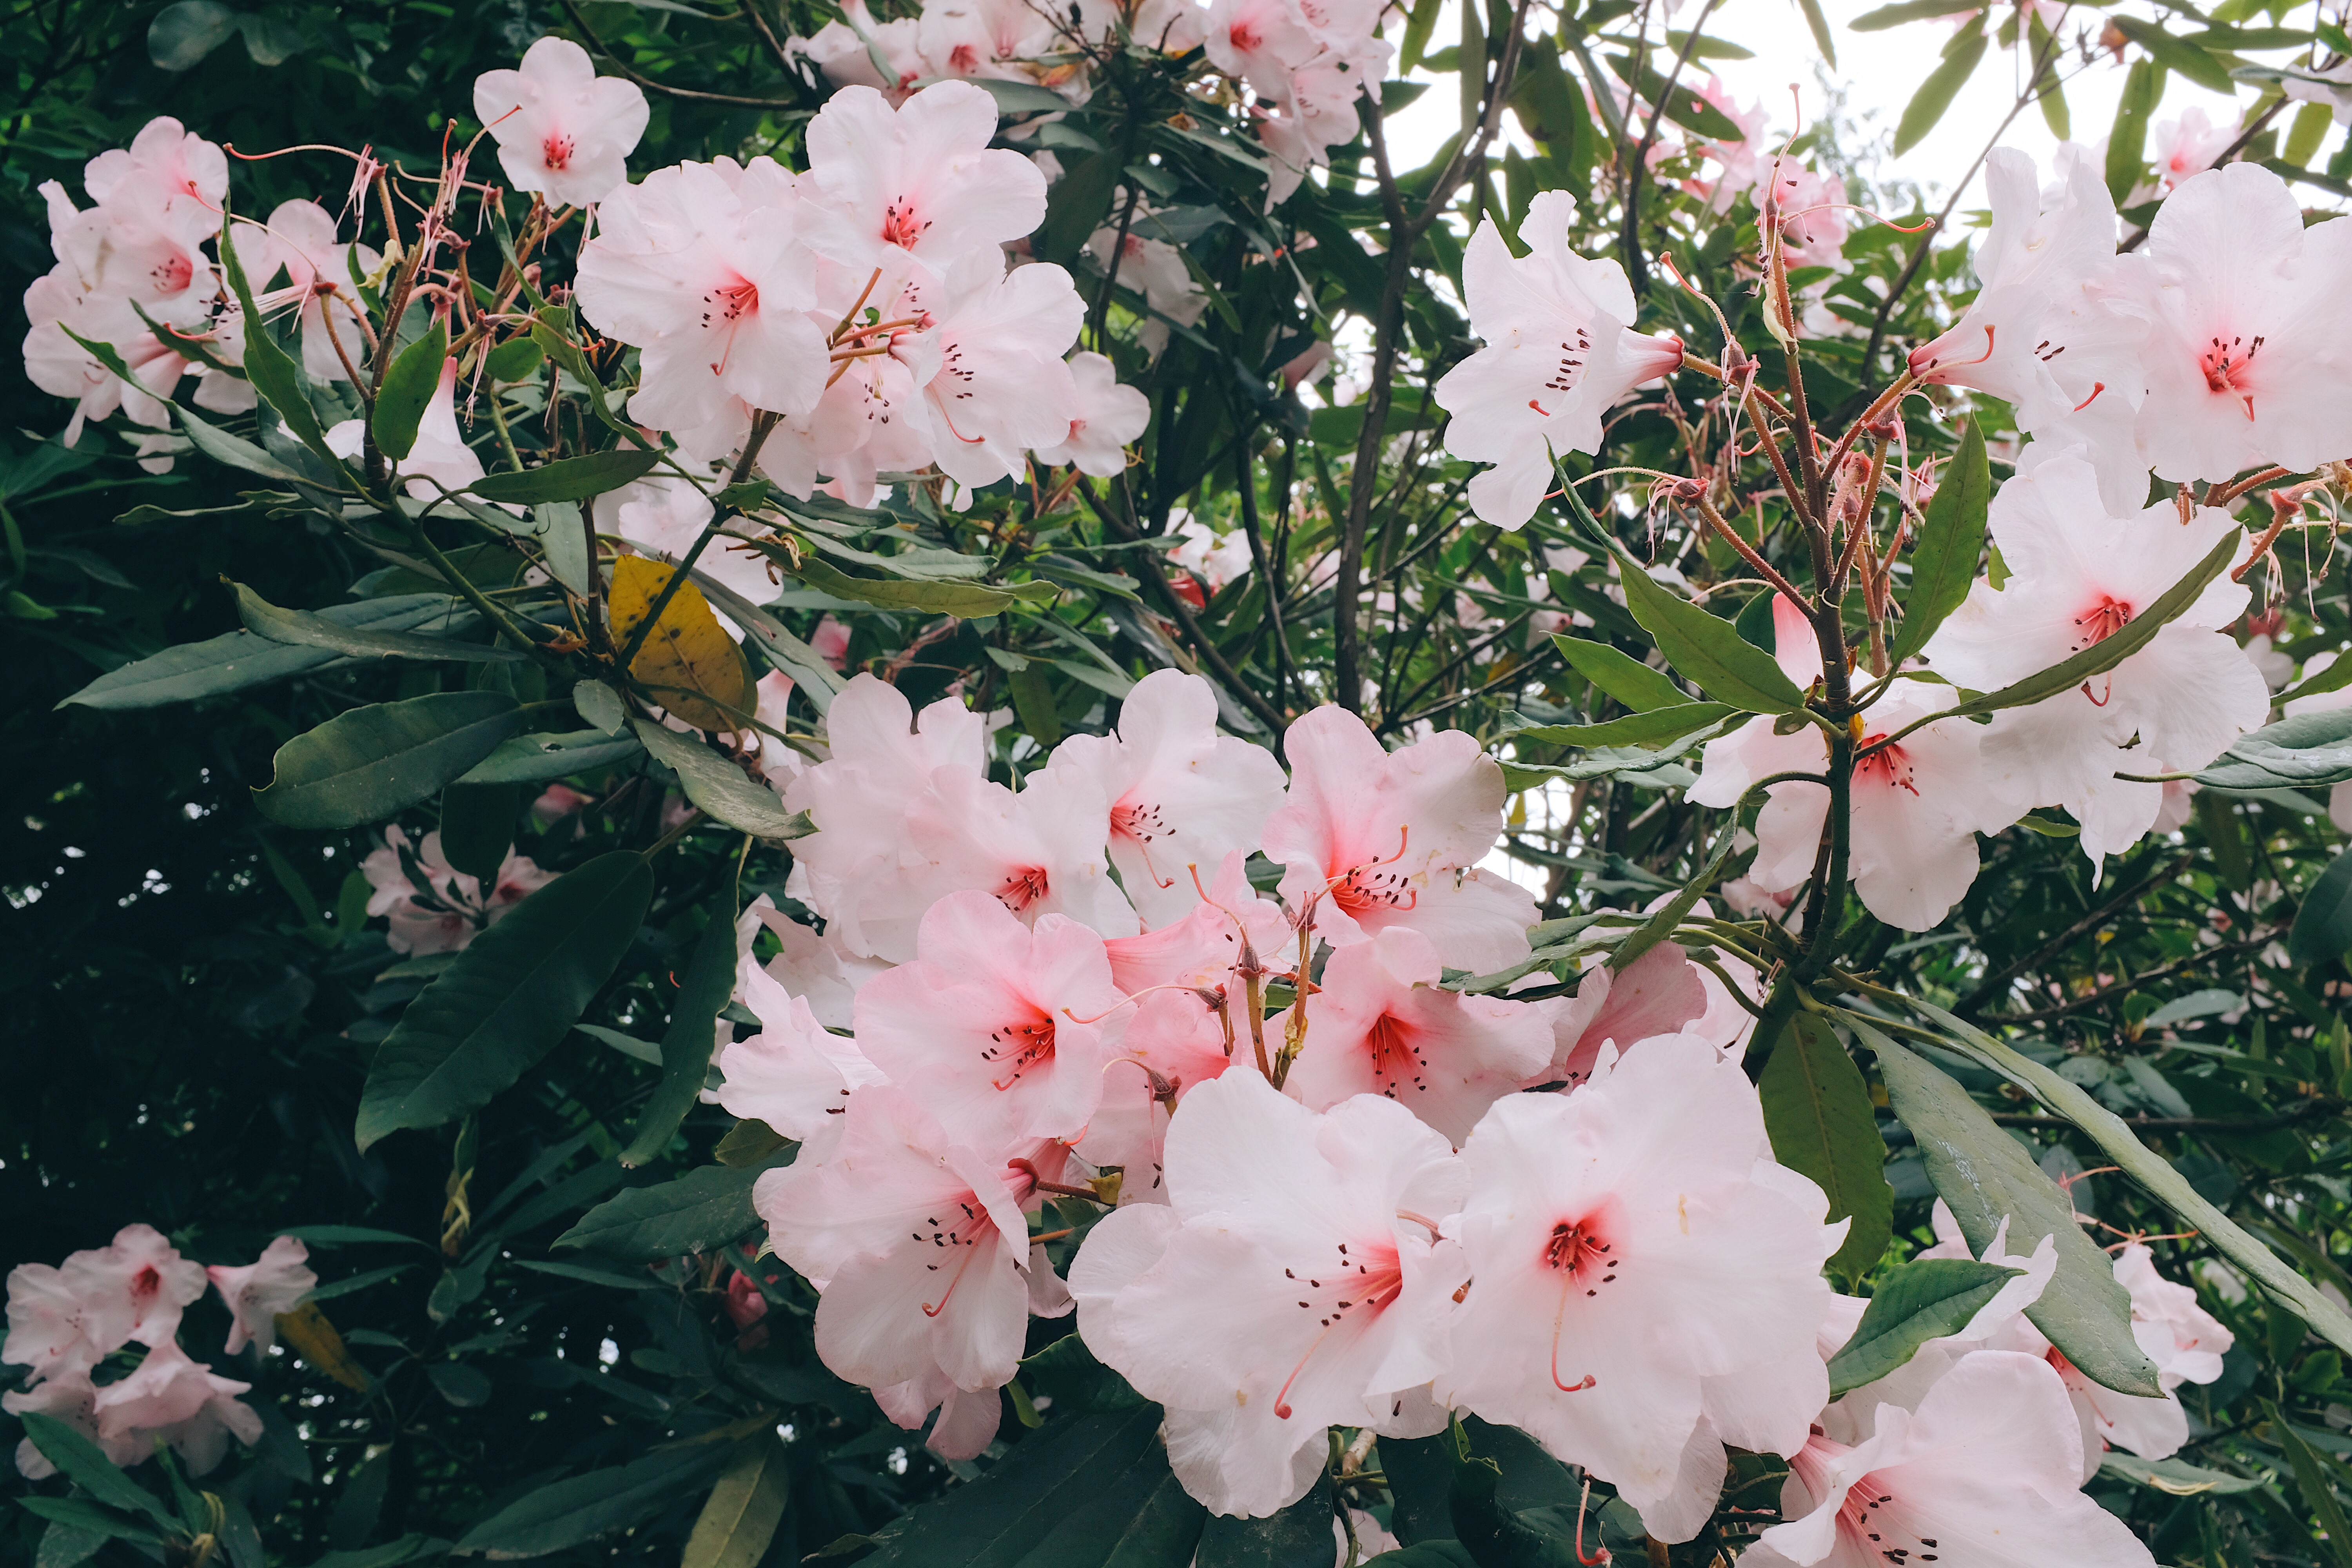 144506 download wallpaper Flowers, Pink, Bloom, Flowering, Plant, Branches, Leaves screensavers and pictures for free